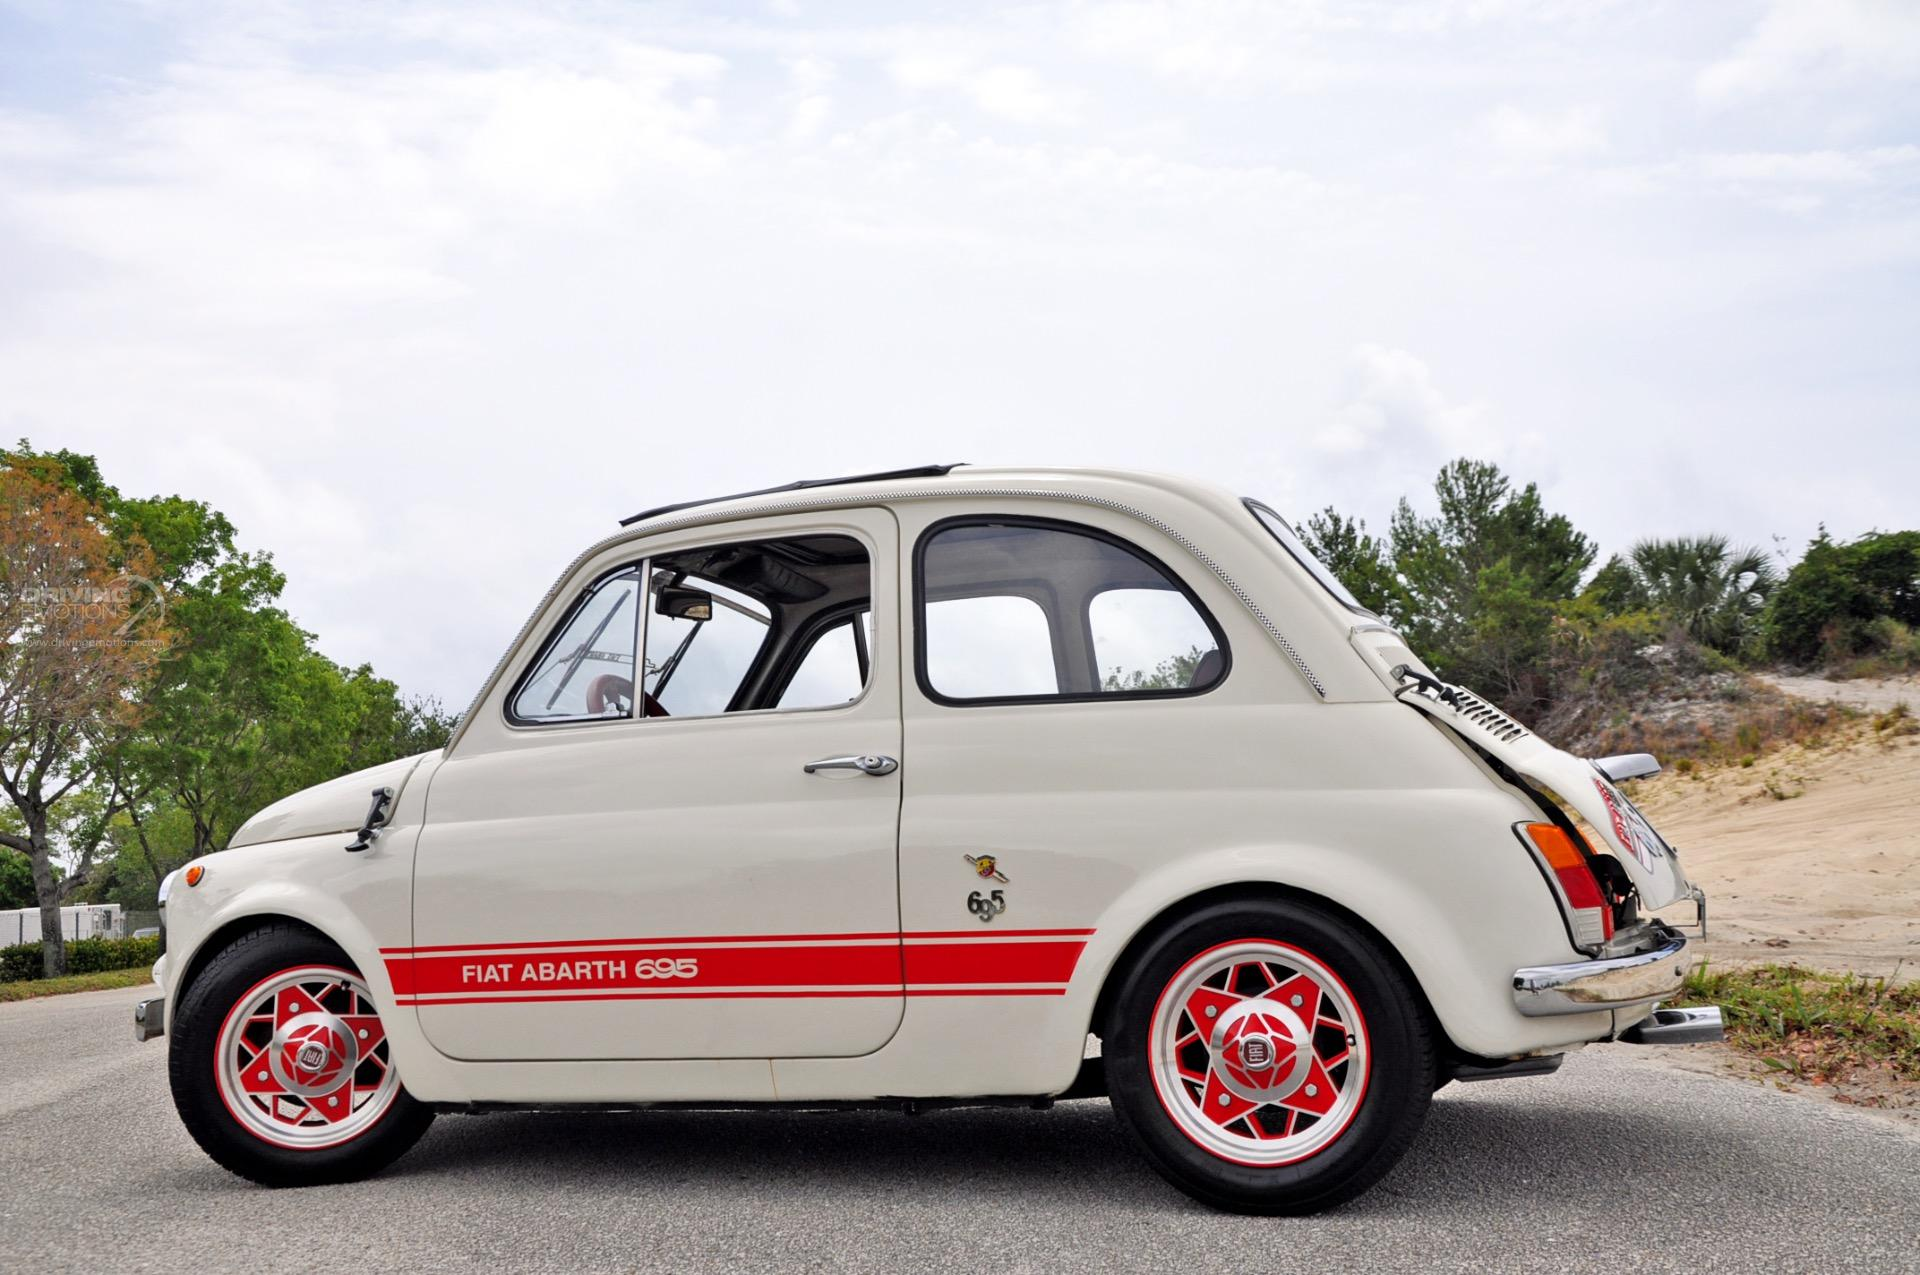 1969 fiat 500 abarth 695 abarth 695 esse esse stock 5876 for sale near lake park fl fl fiat. Black Bedroom Furniture Sets. Home Design Ideas